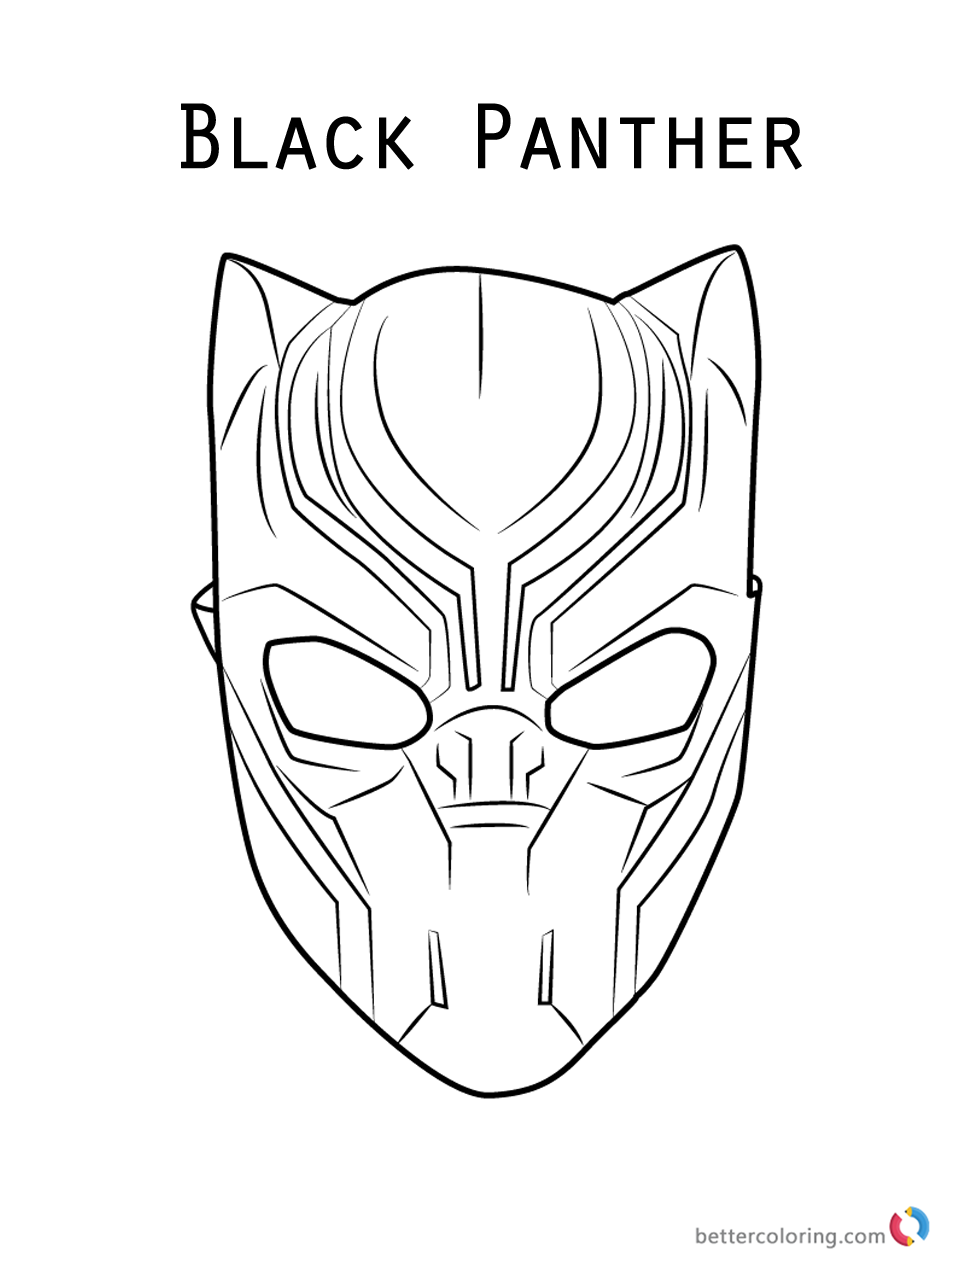 Black Panther Mask Coloring Page Free Printable Coloring